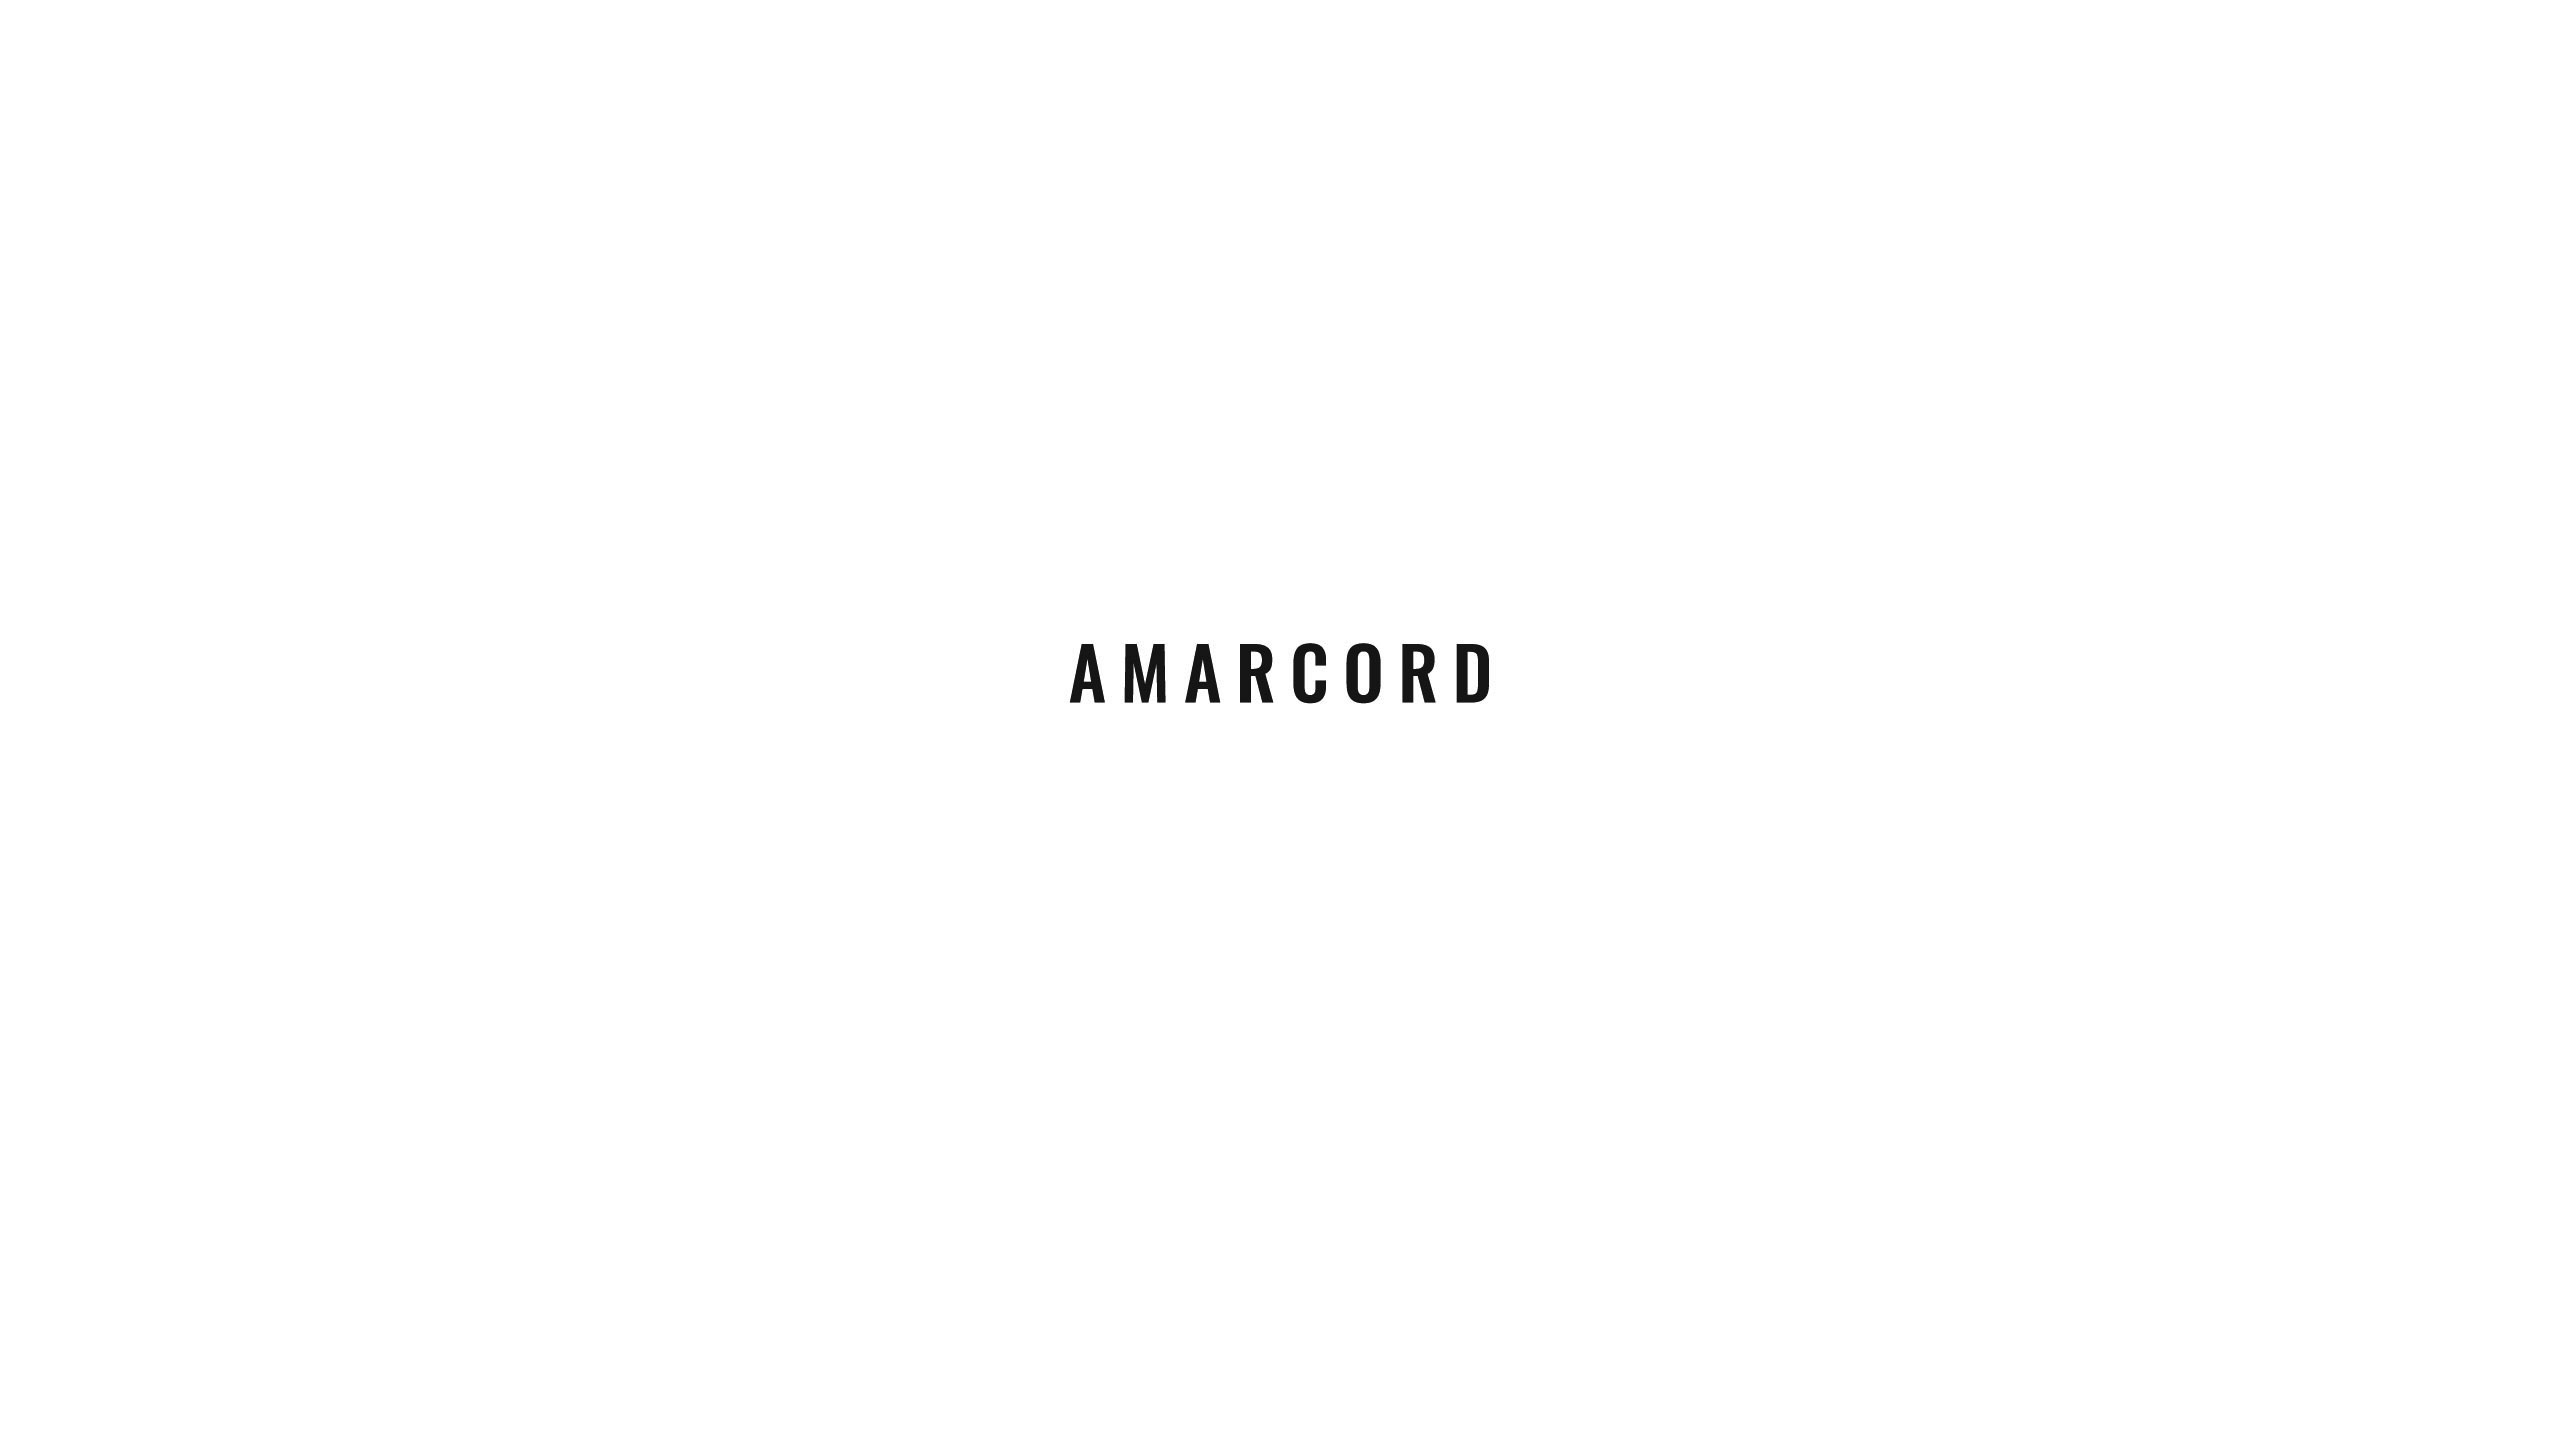 1a_Text_AMRCORD1